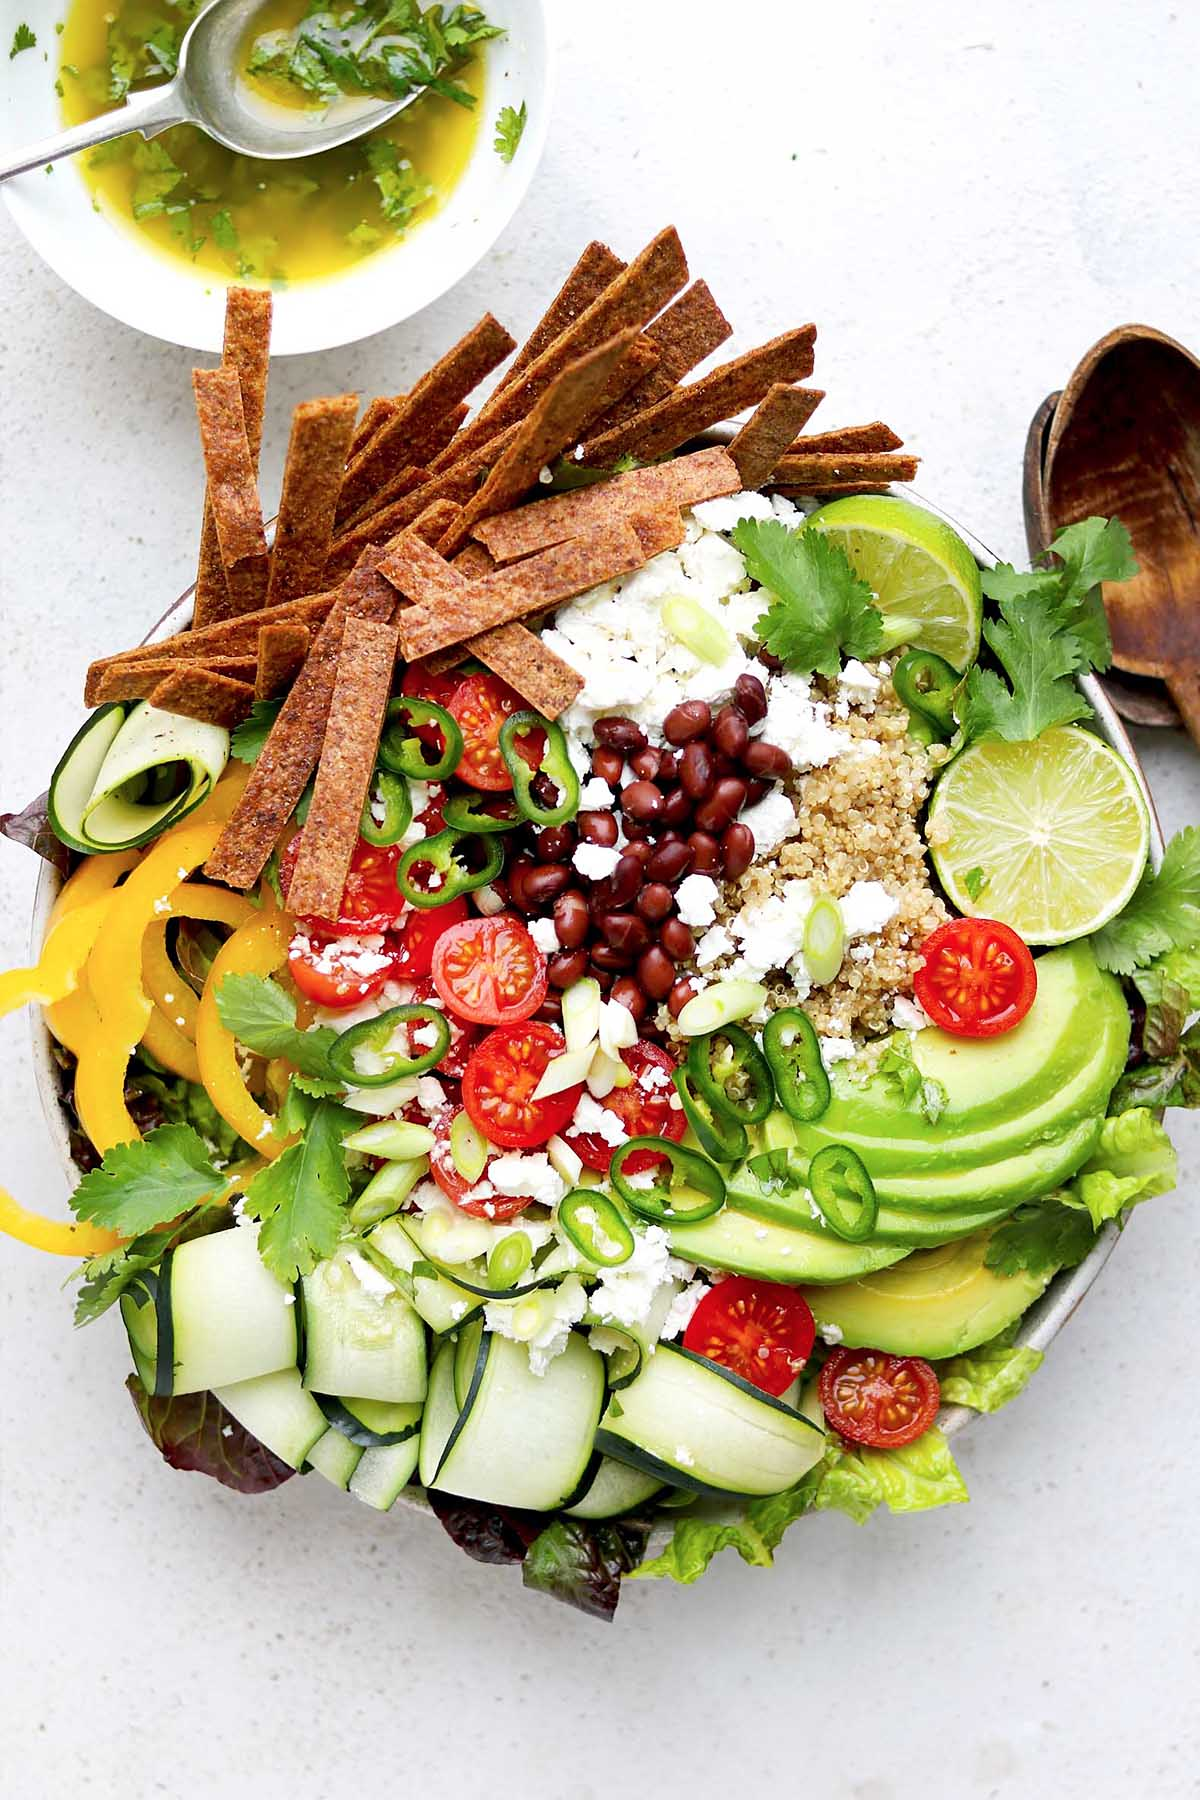 Taco salad bowl full of avocado , tomatoes, lime, taco stripes and peppers, feta and herbs